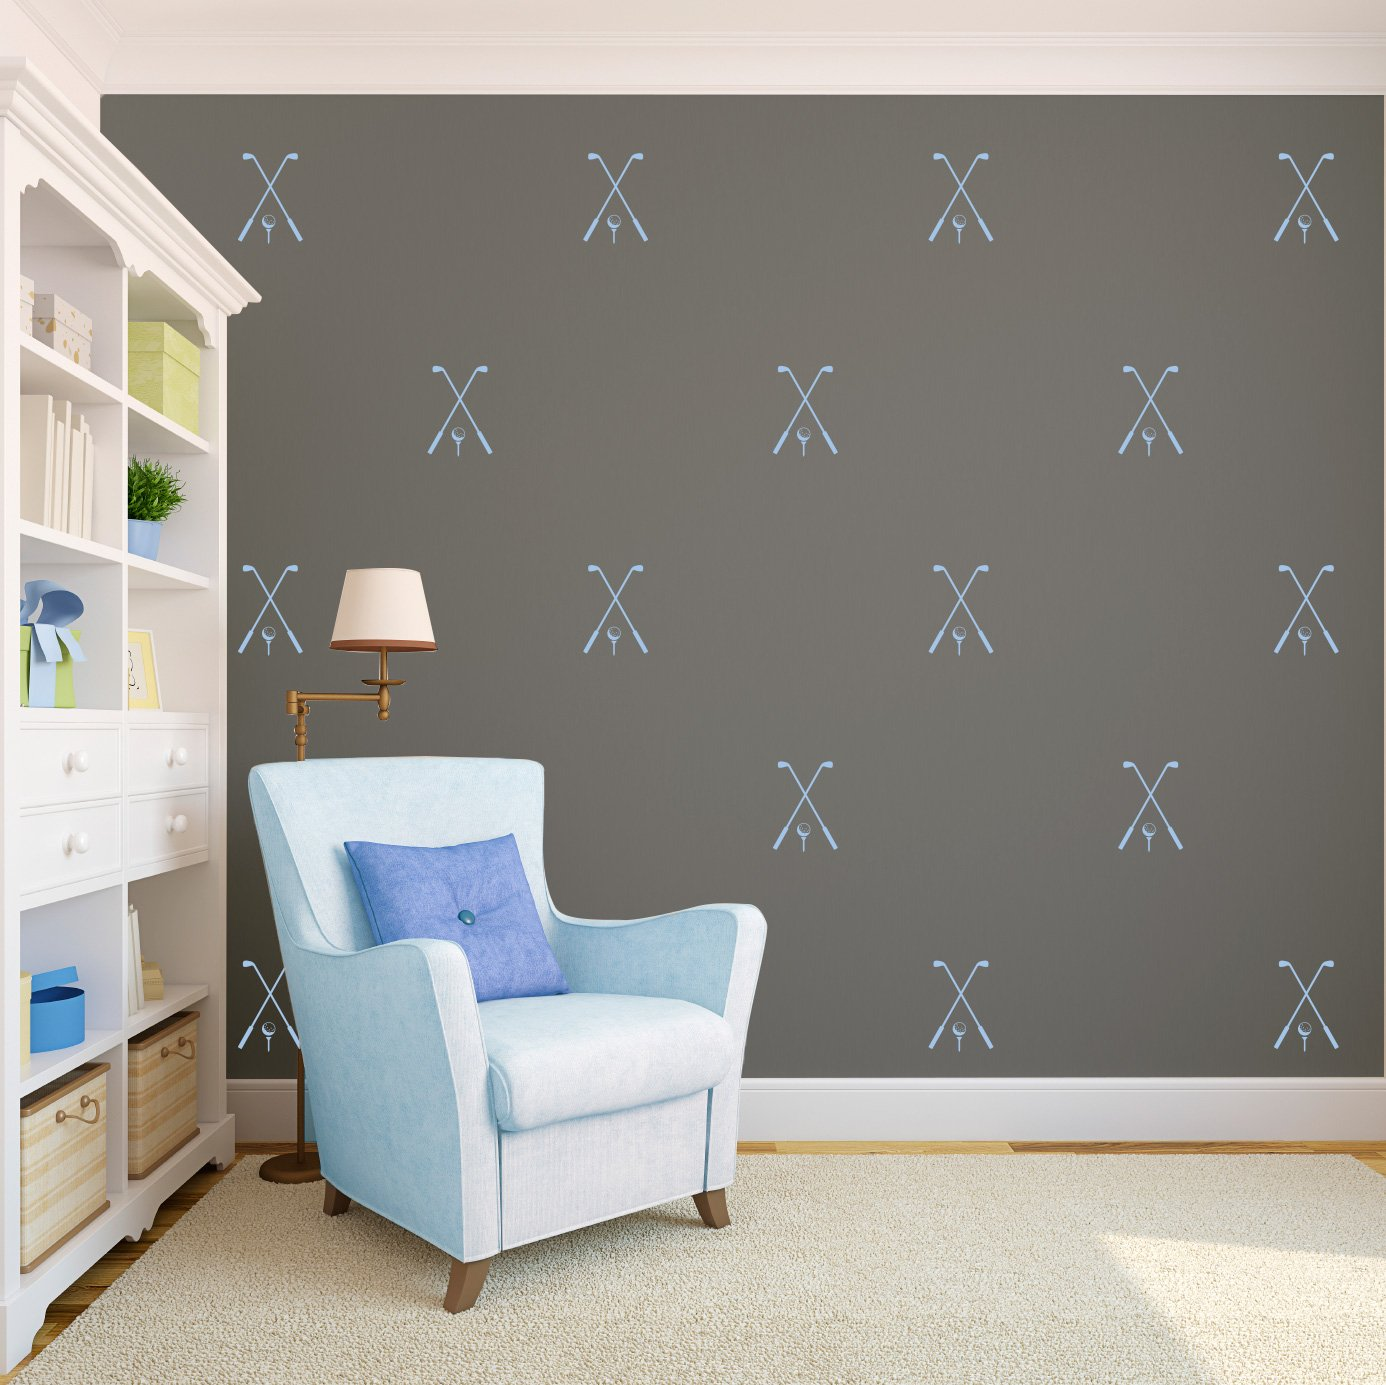 Powder Blue Golf Pattern - Set of 25 - Sports Vinyl Wall Art Decal for Homes, Offices, Kids Rooms, Nurseries, Schools, High Schools, Colleges, Universities, Interior Designers, Architects, Remodelers